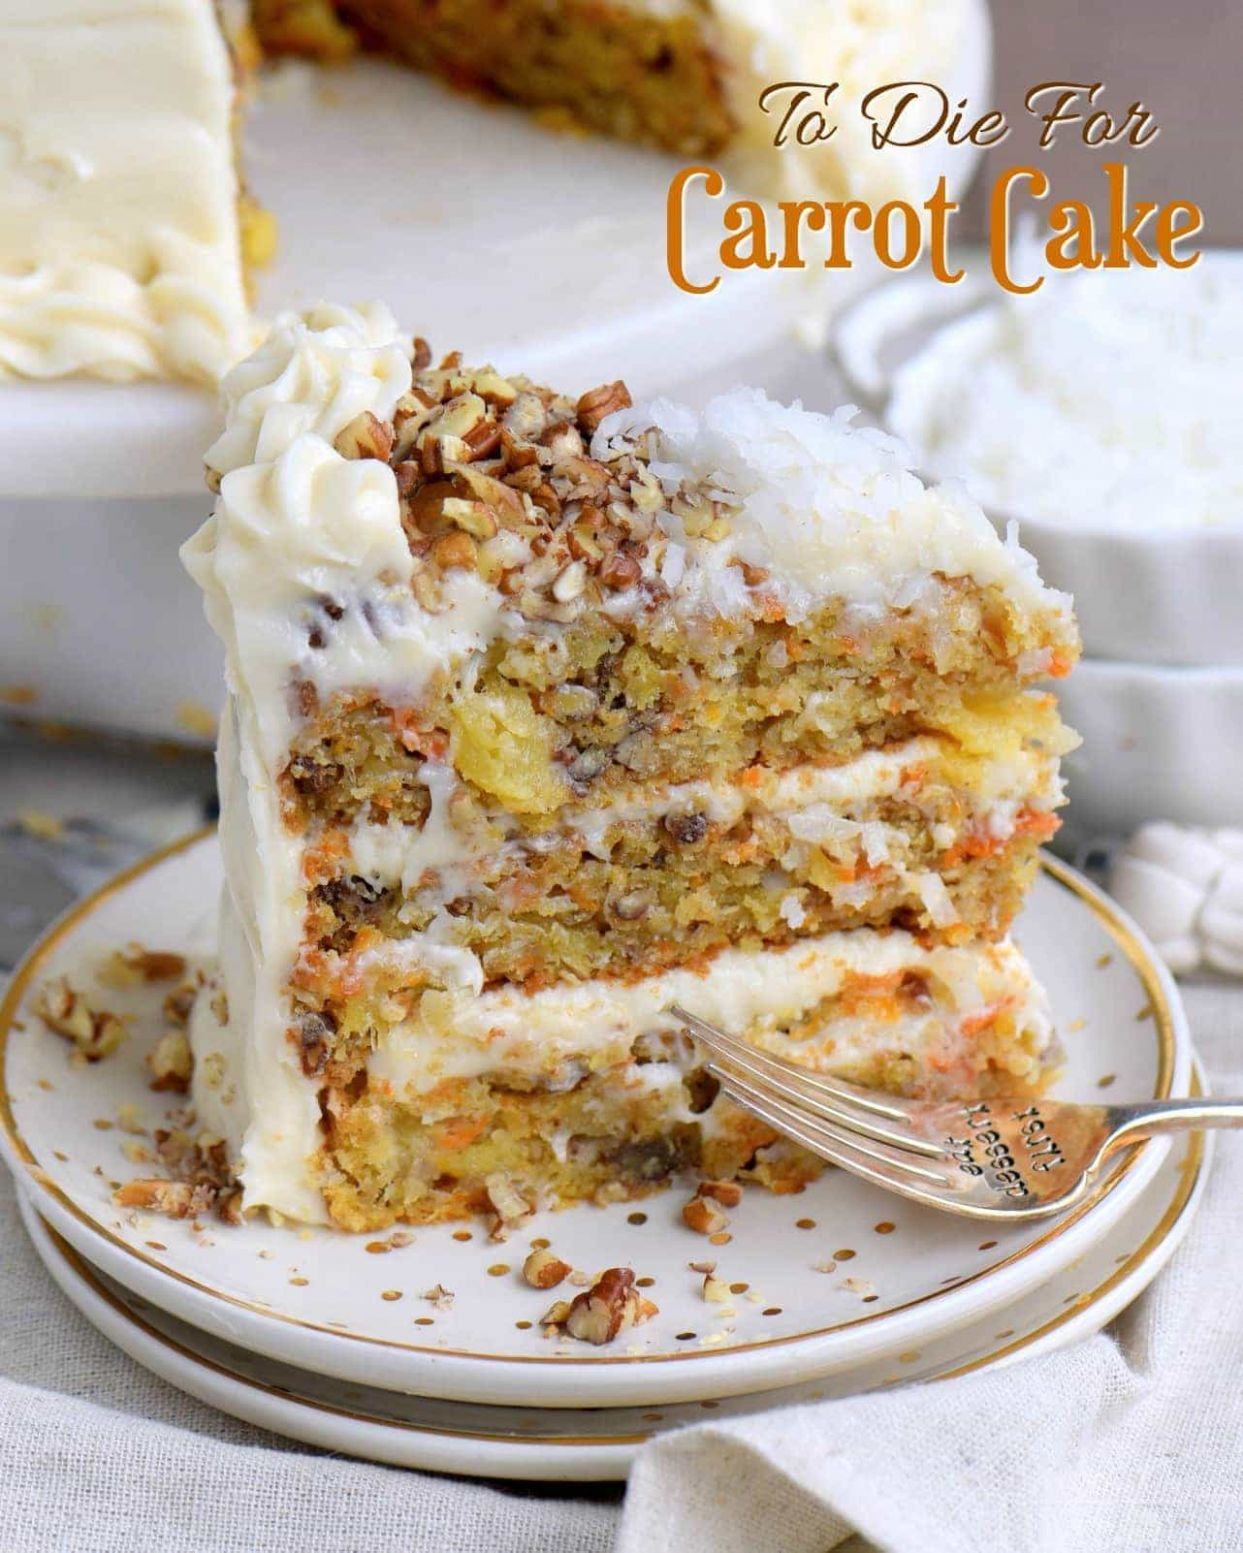 To Die For Carrot Cake - Cake Recipes